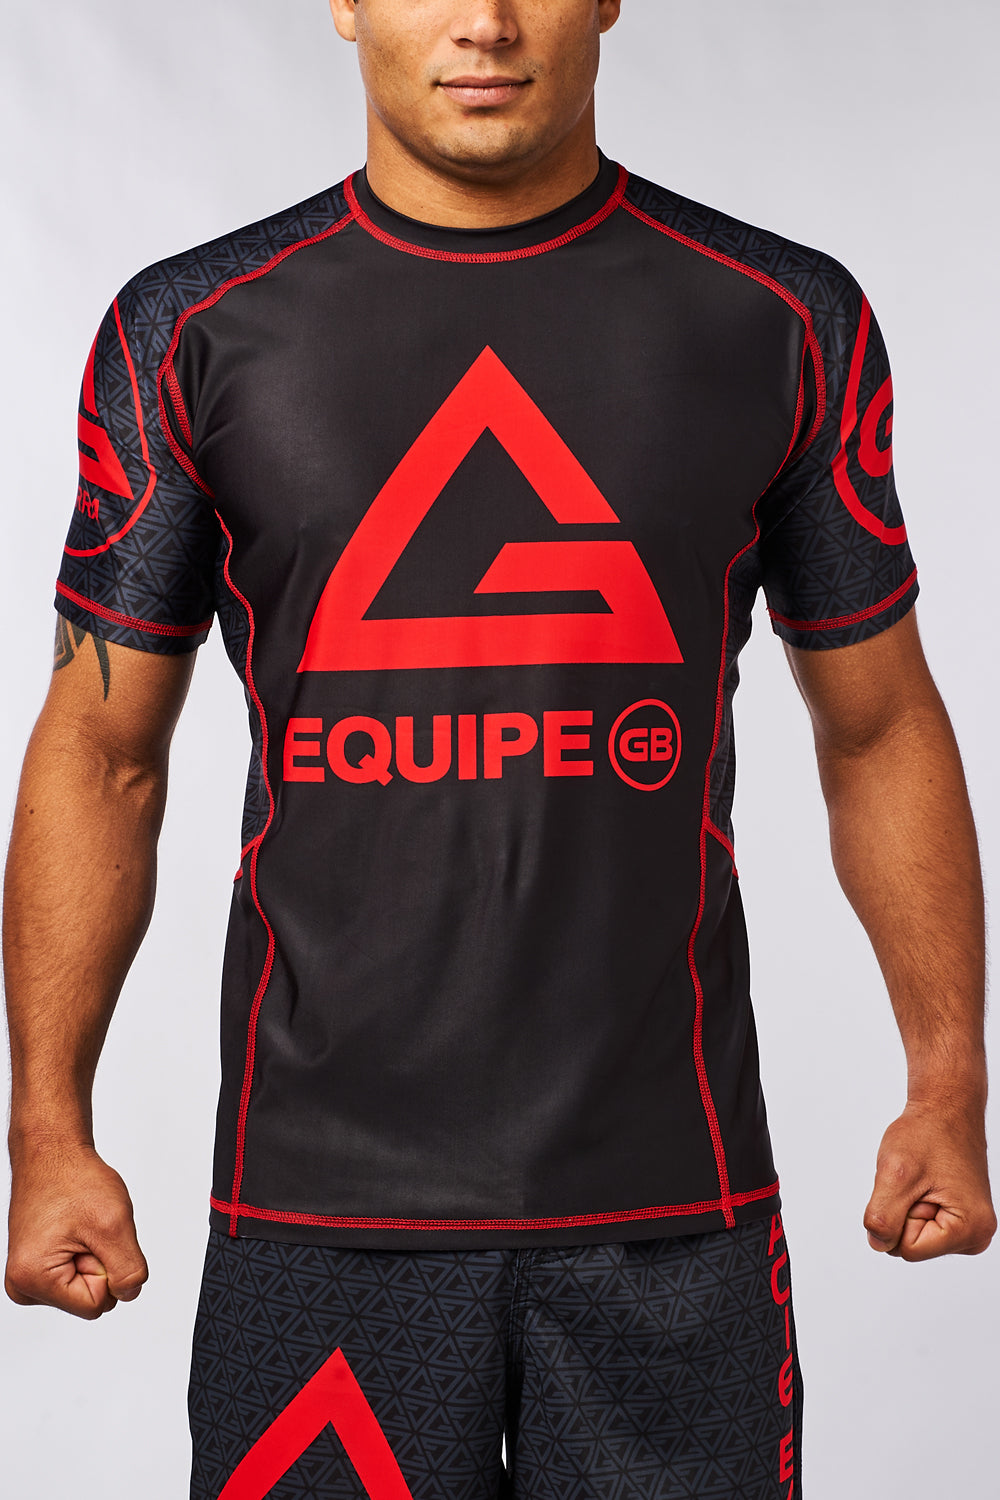 Equip Compressed Fit S/S Rashguard - Black